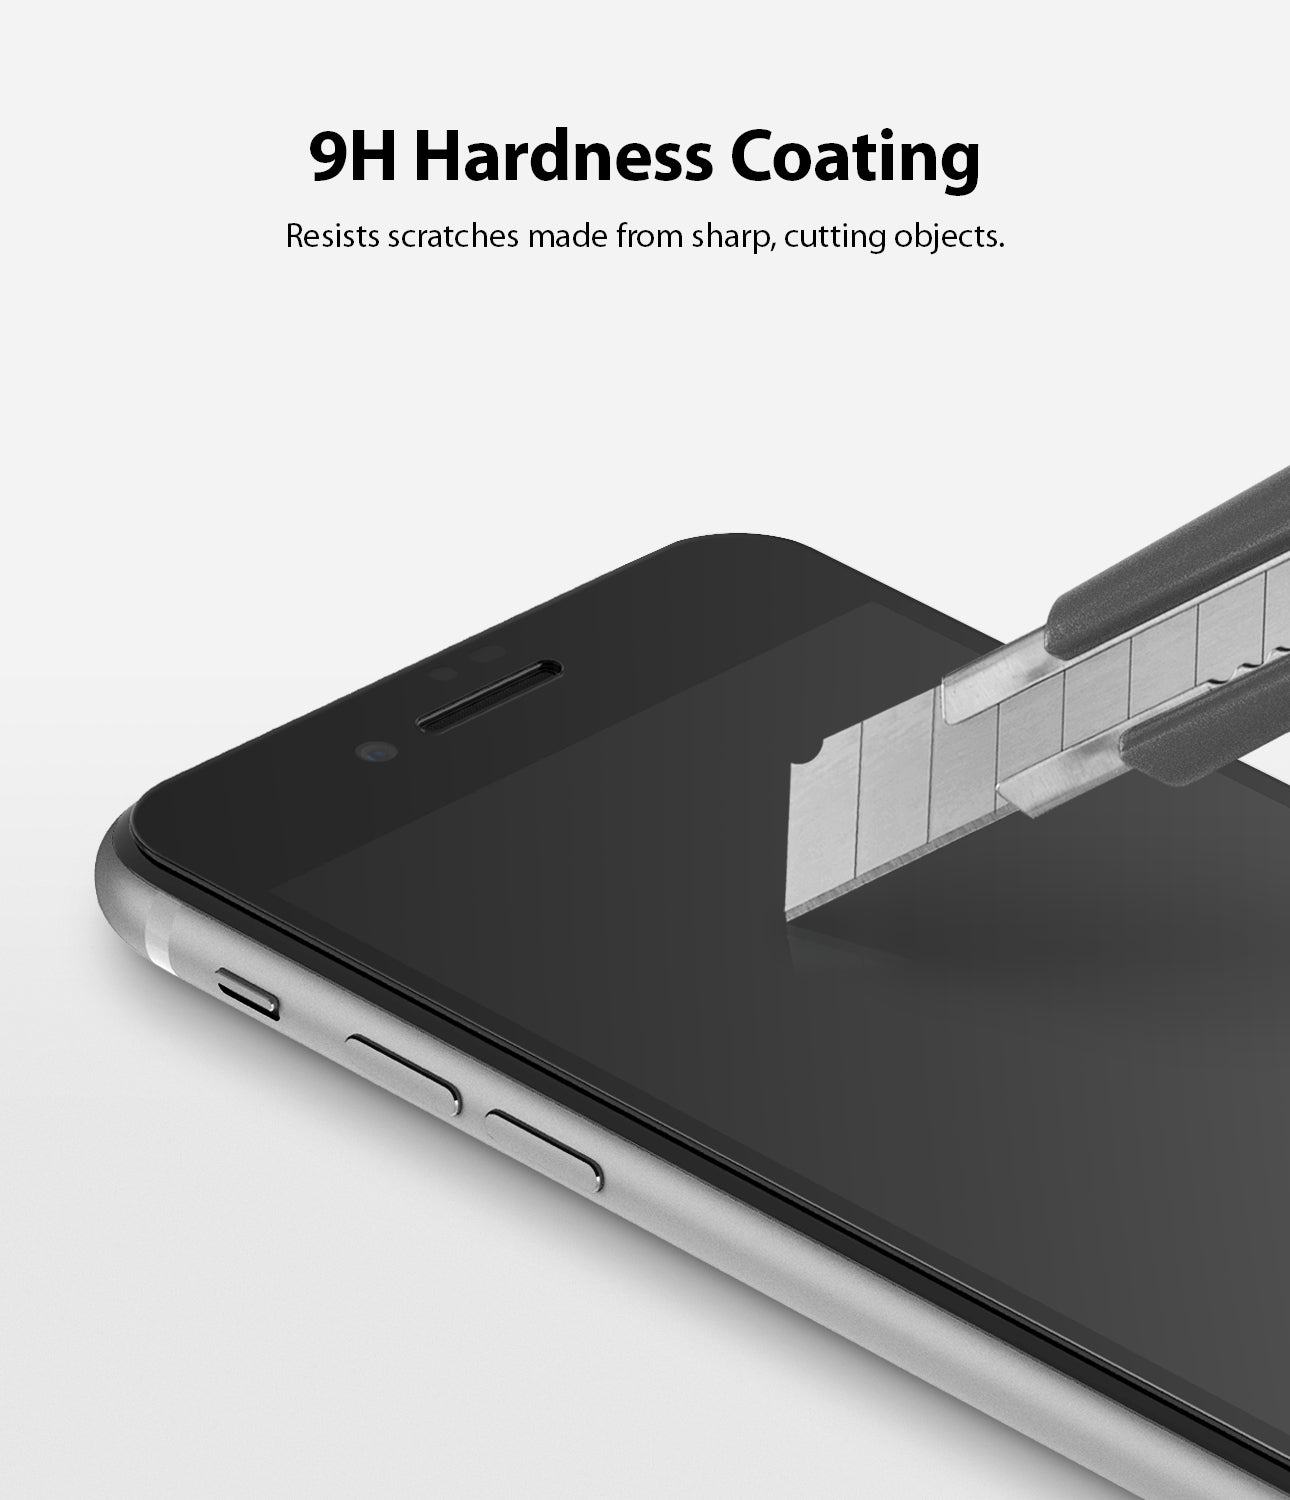 9h hardness coating